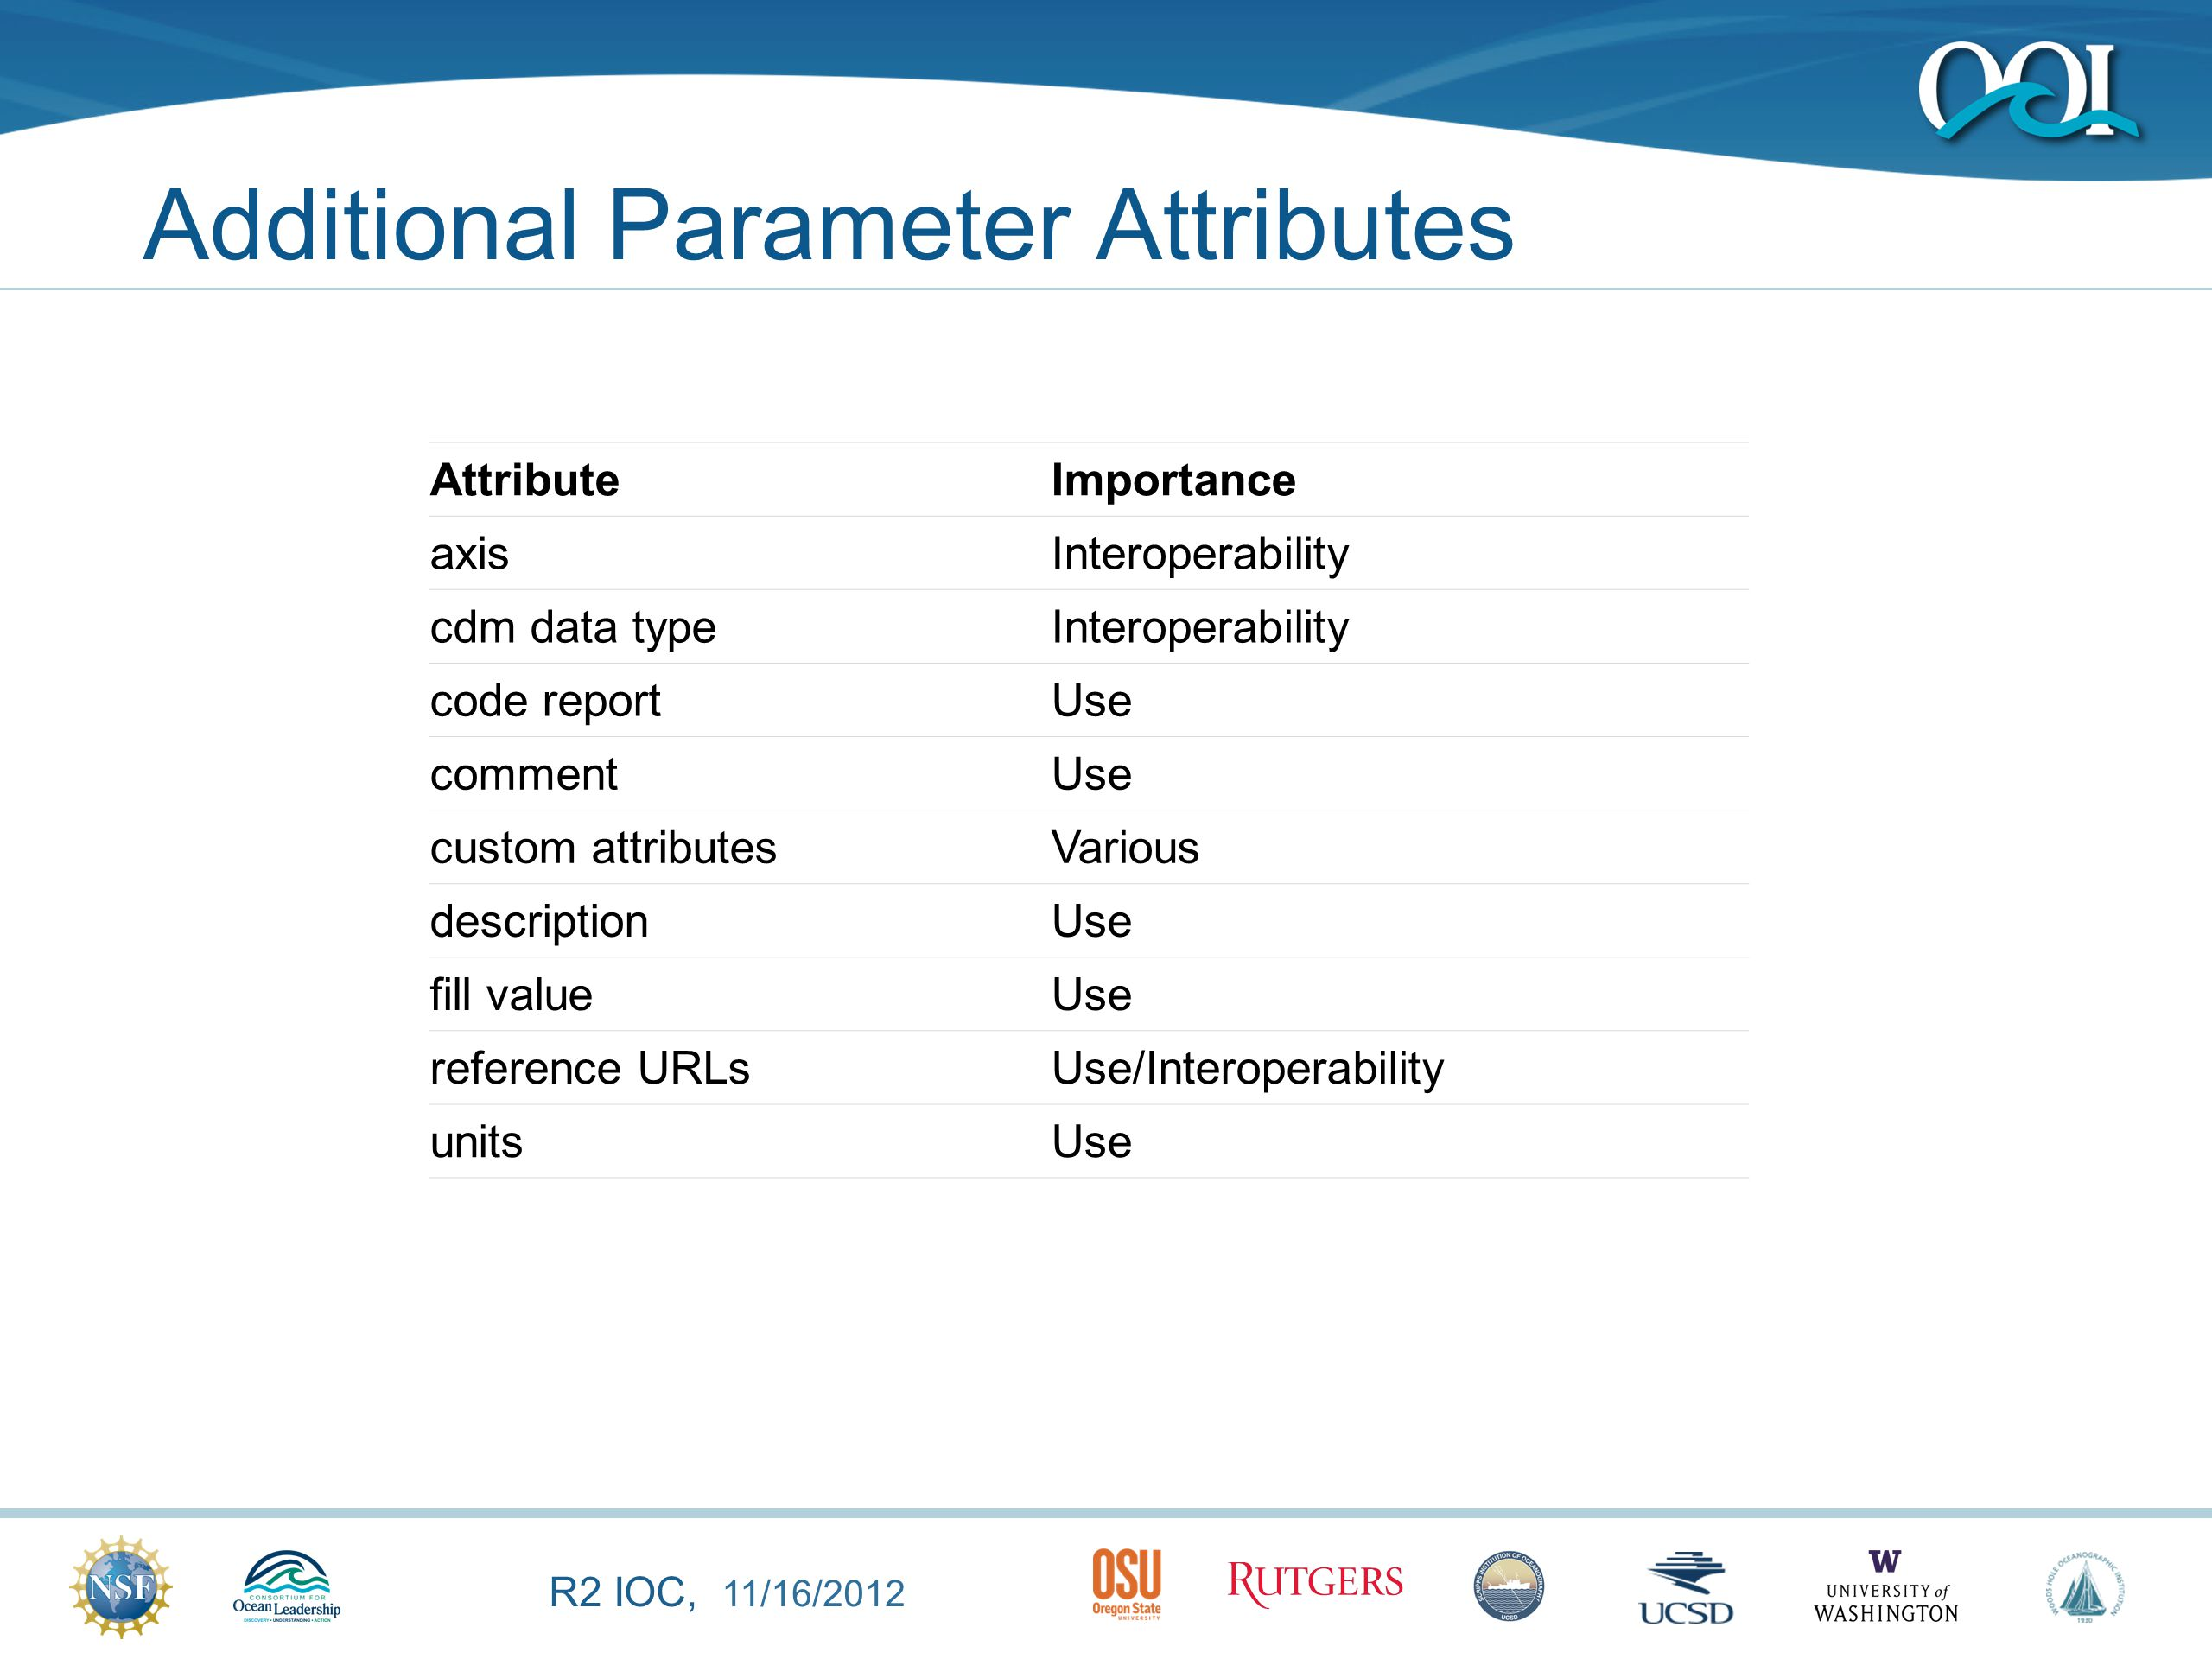 R2 IOC, 11/16/2012 Sources of Parameter Attributes Instrument Operation Specification (IOS): Defines in detail the streams of data coming off of the instrument.